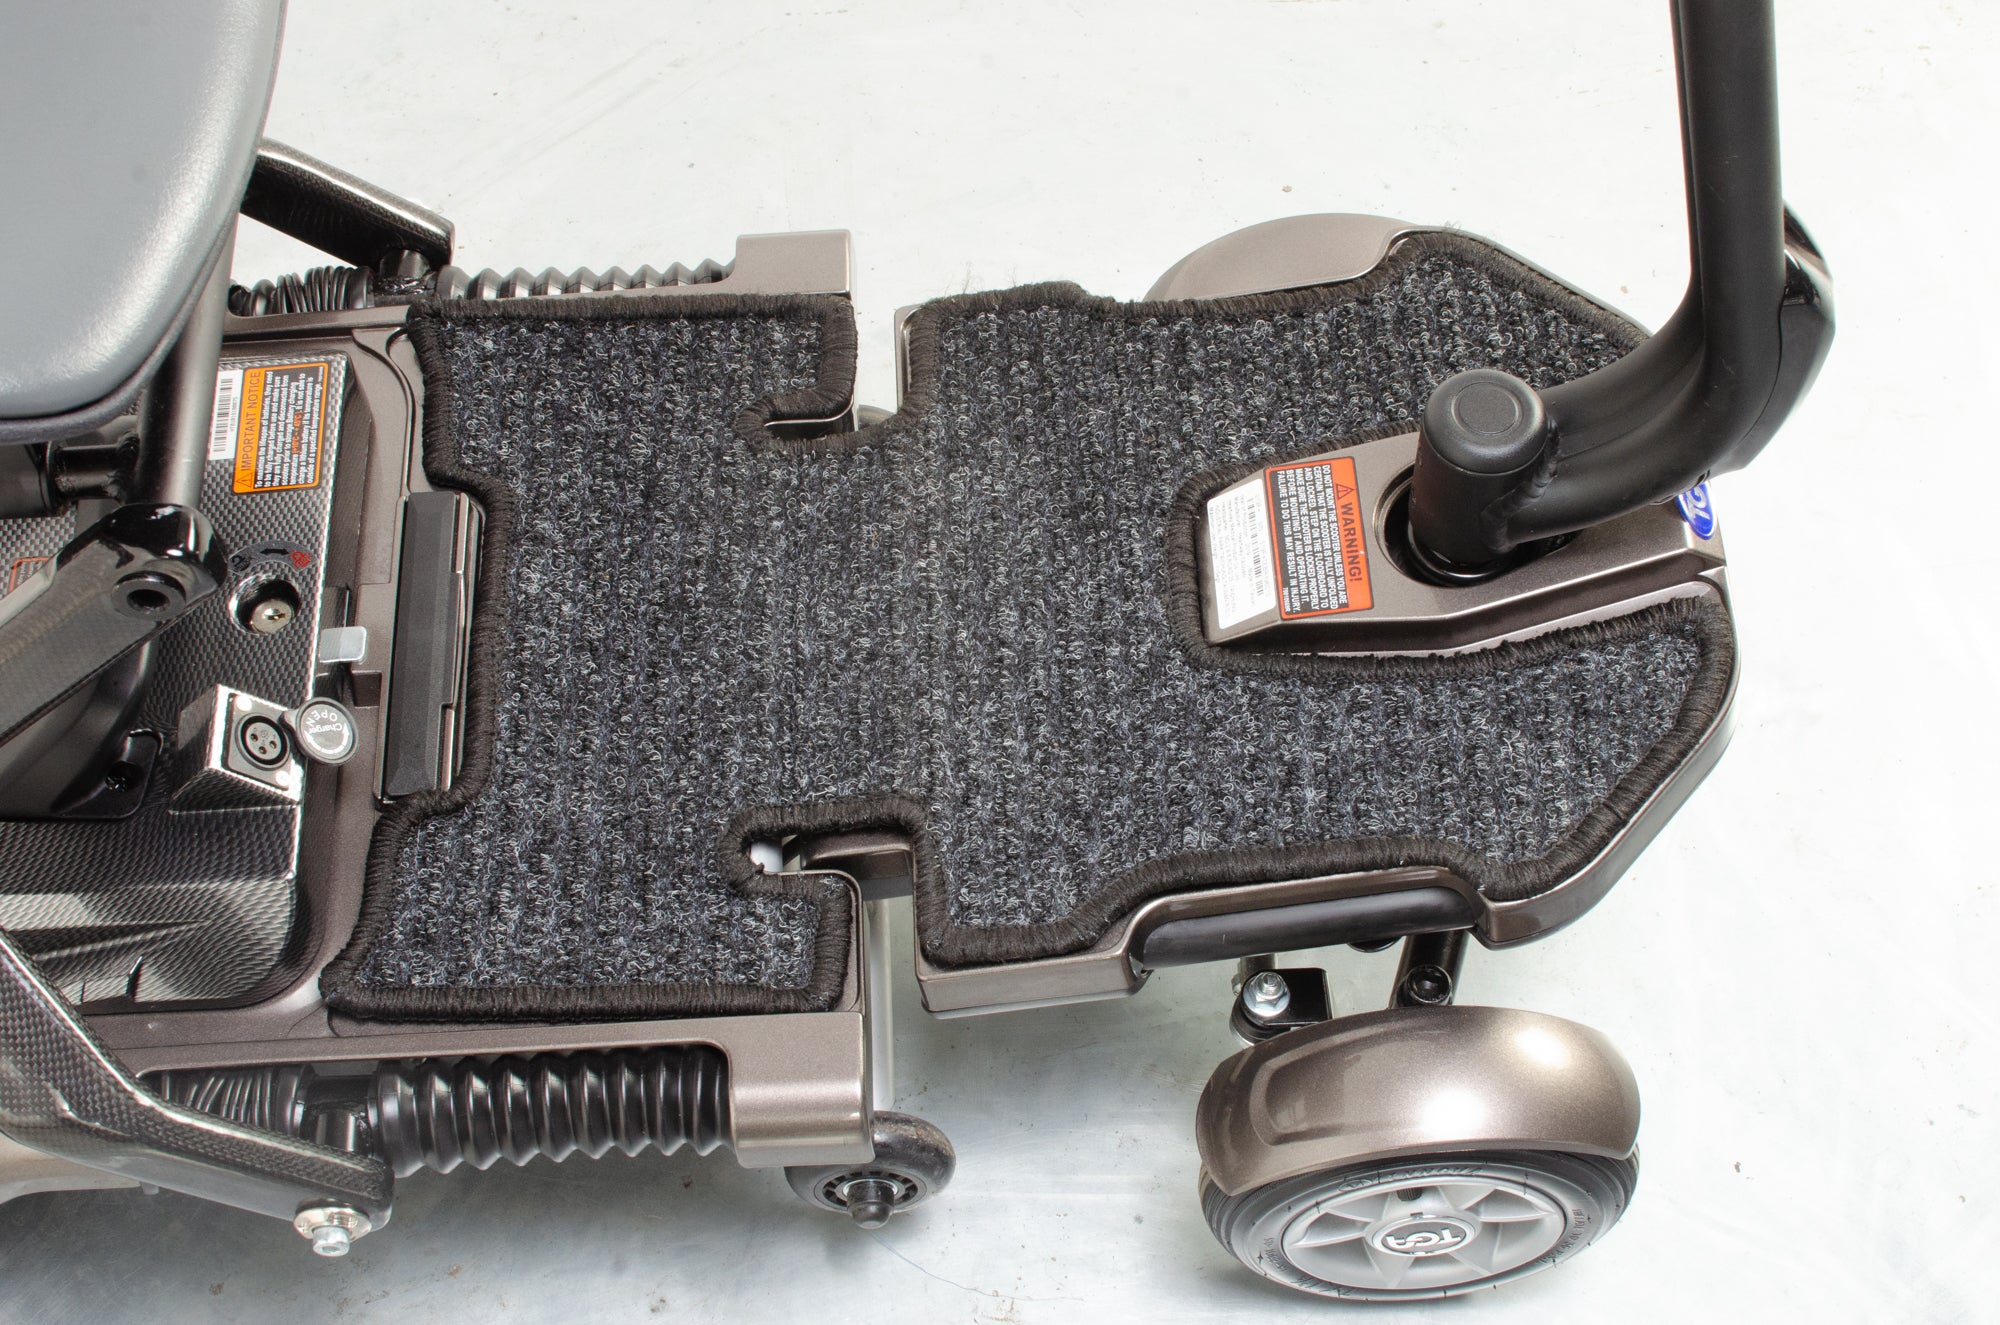 TGA Minimo Plus 4 Used Mobility Scooter Folding Travel Small Lithium Boot